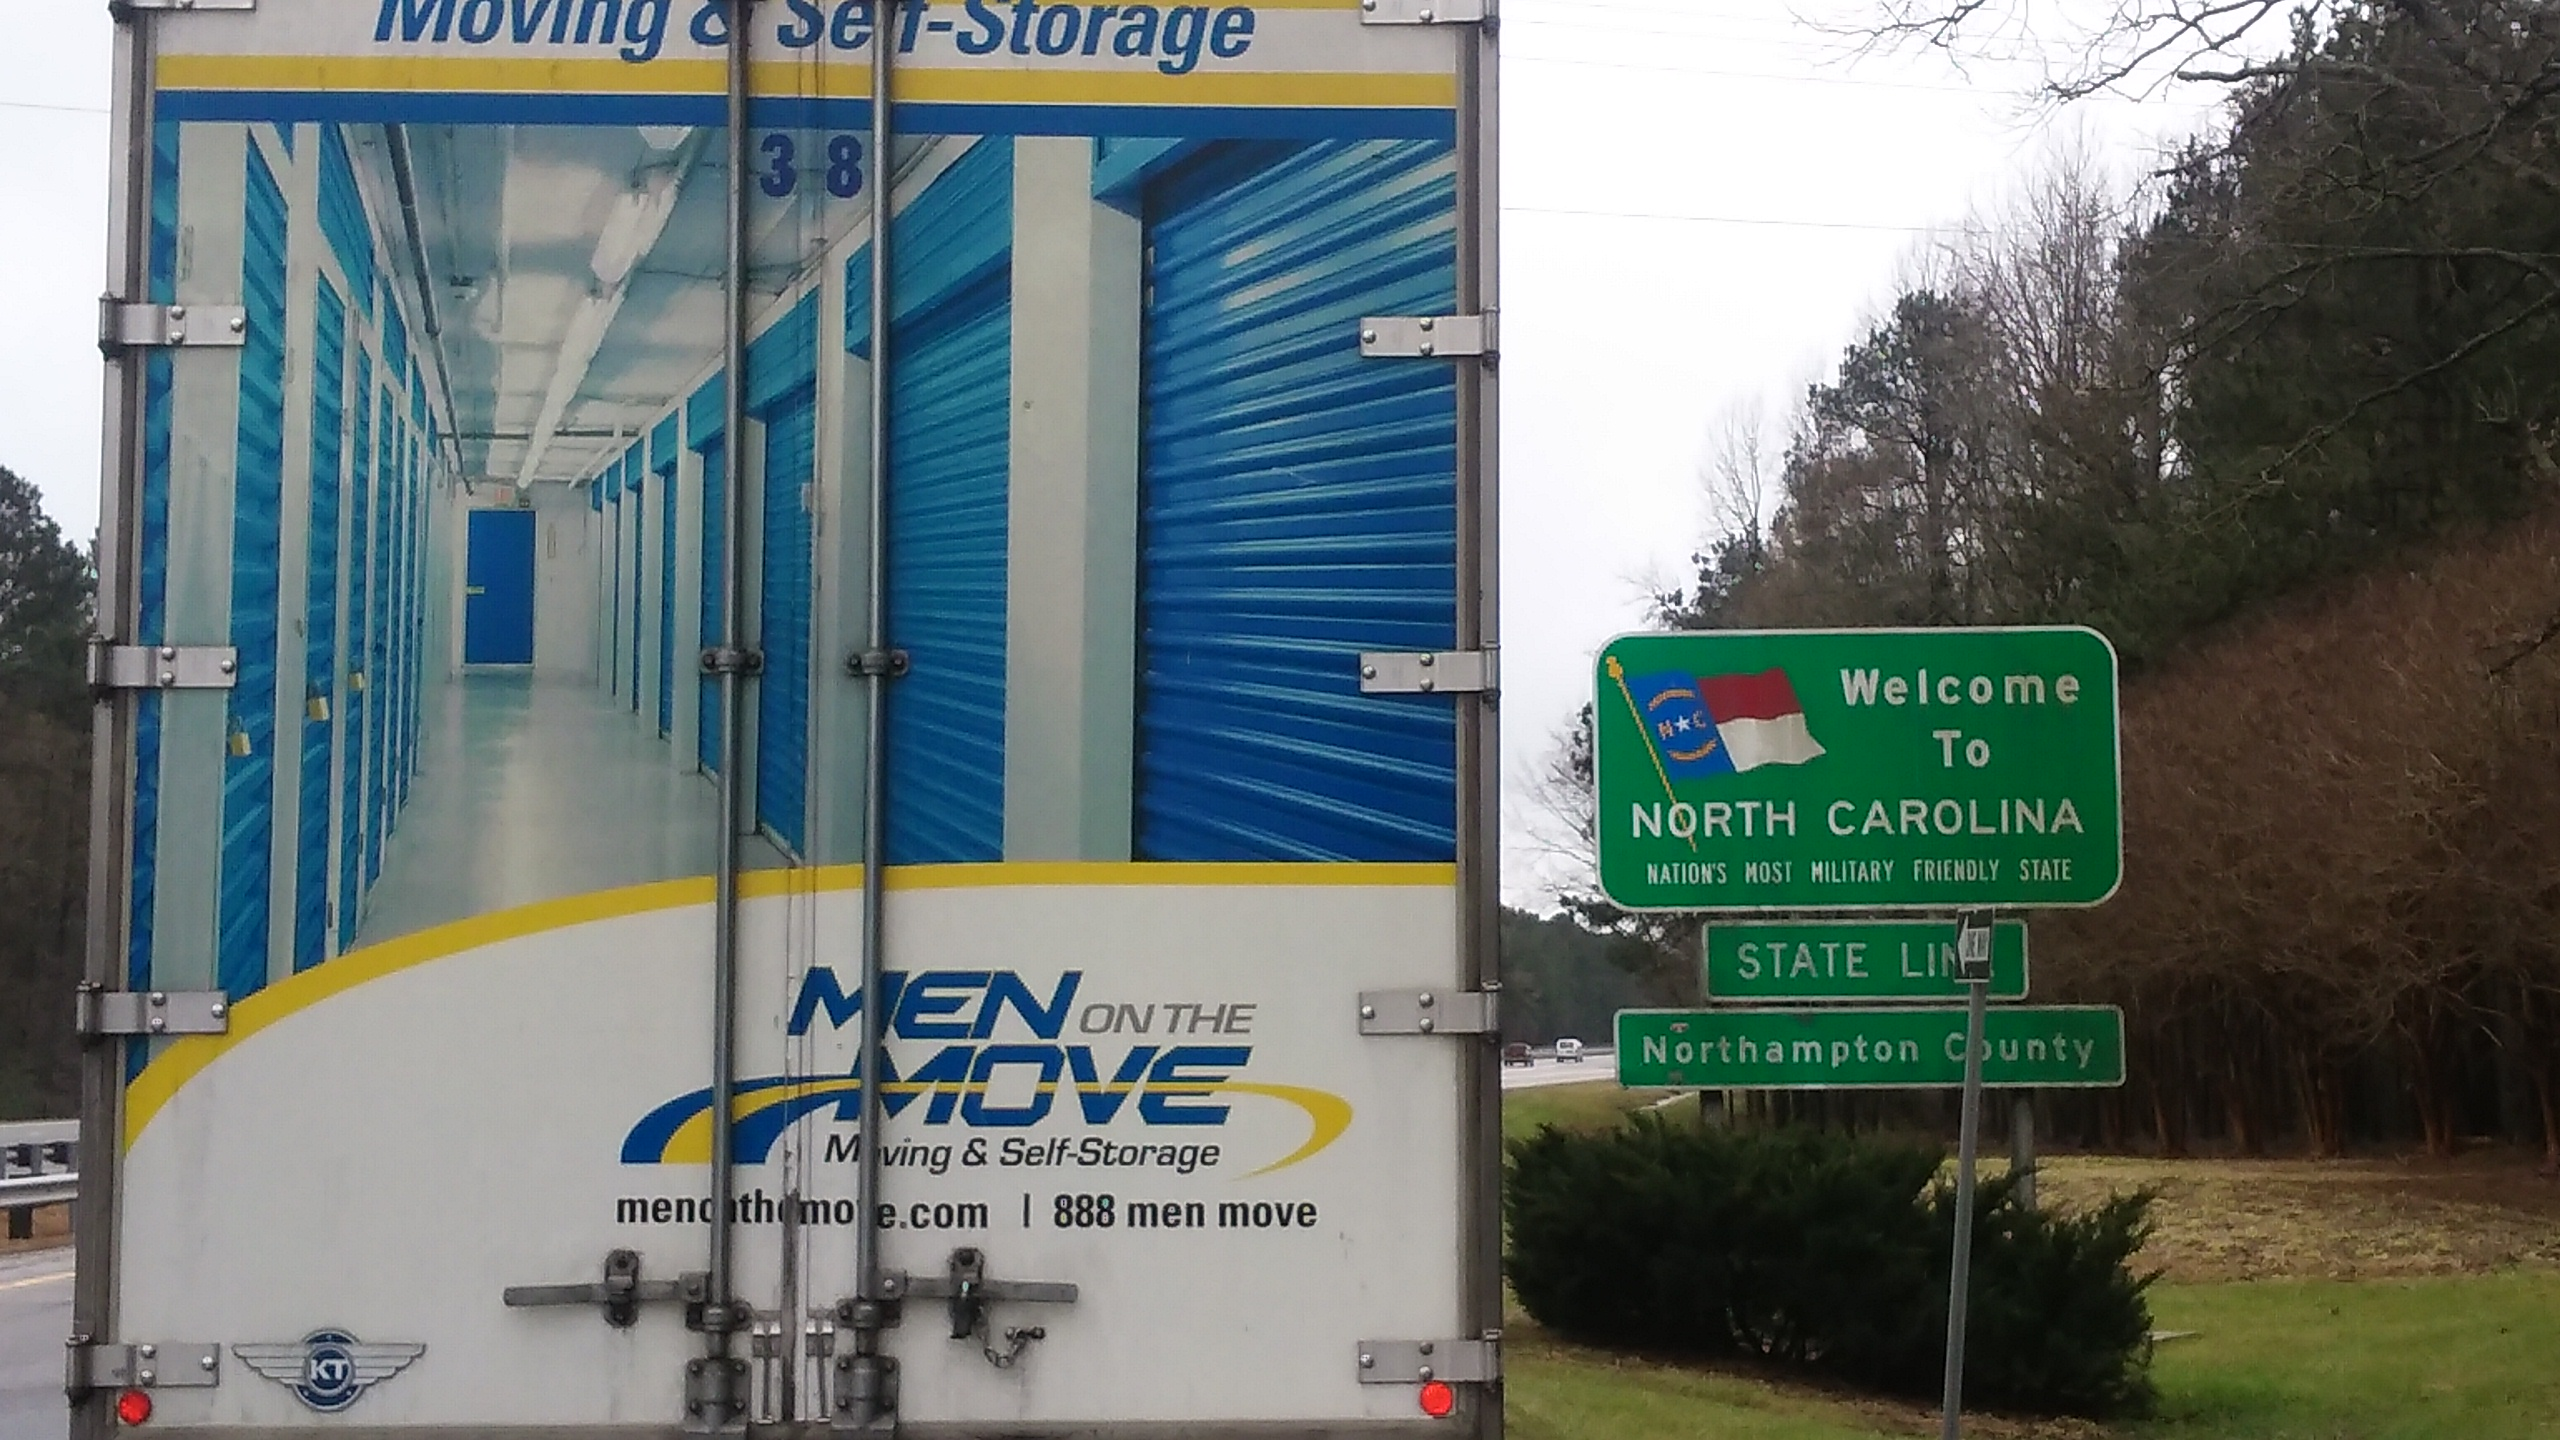 Long Island Moving Service